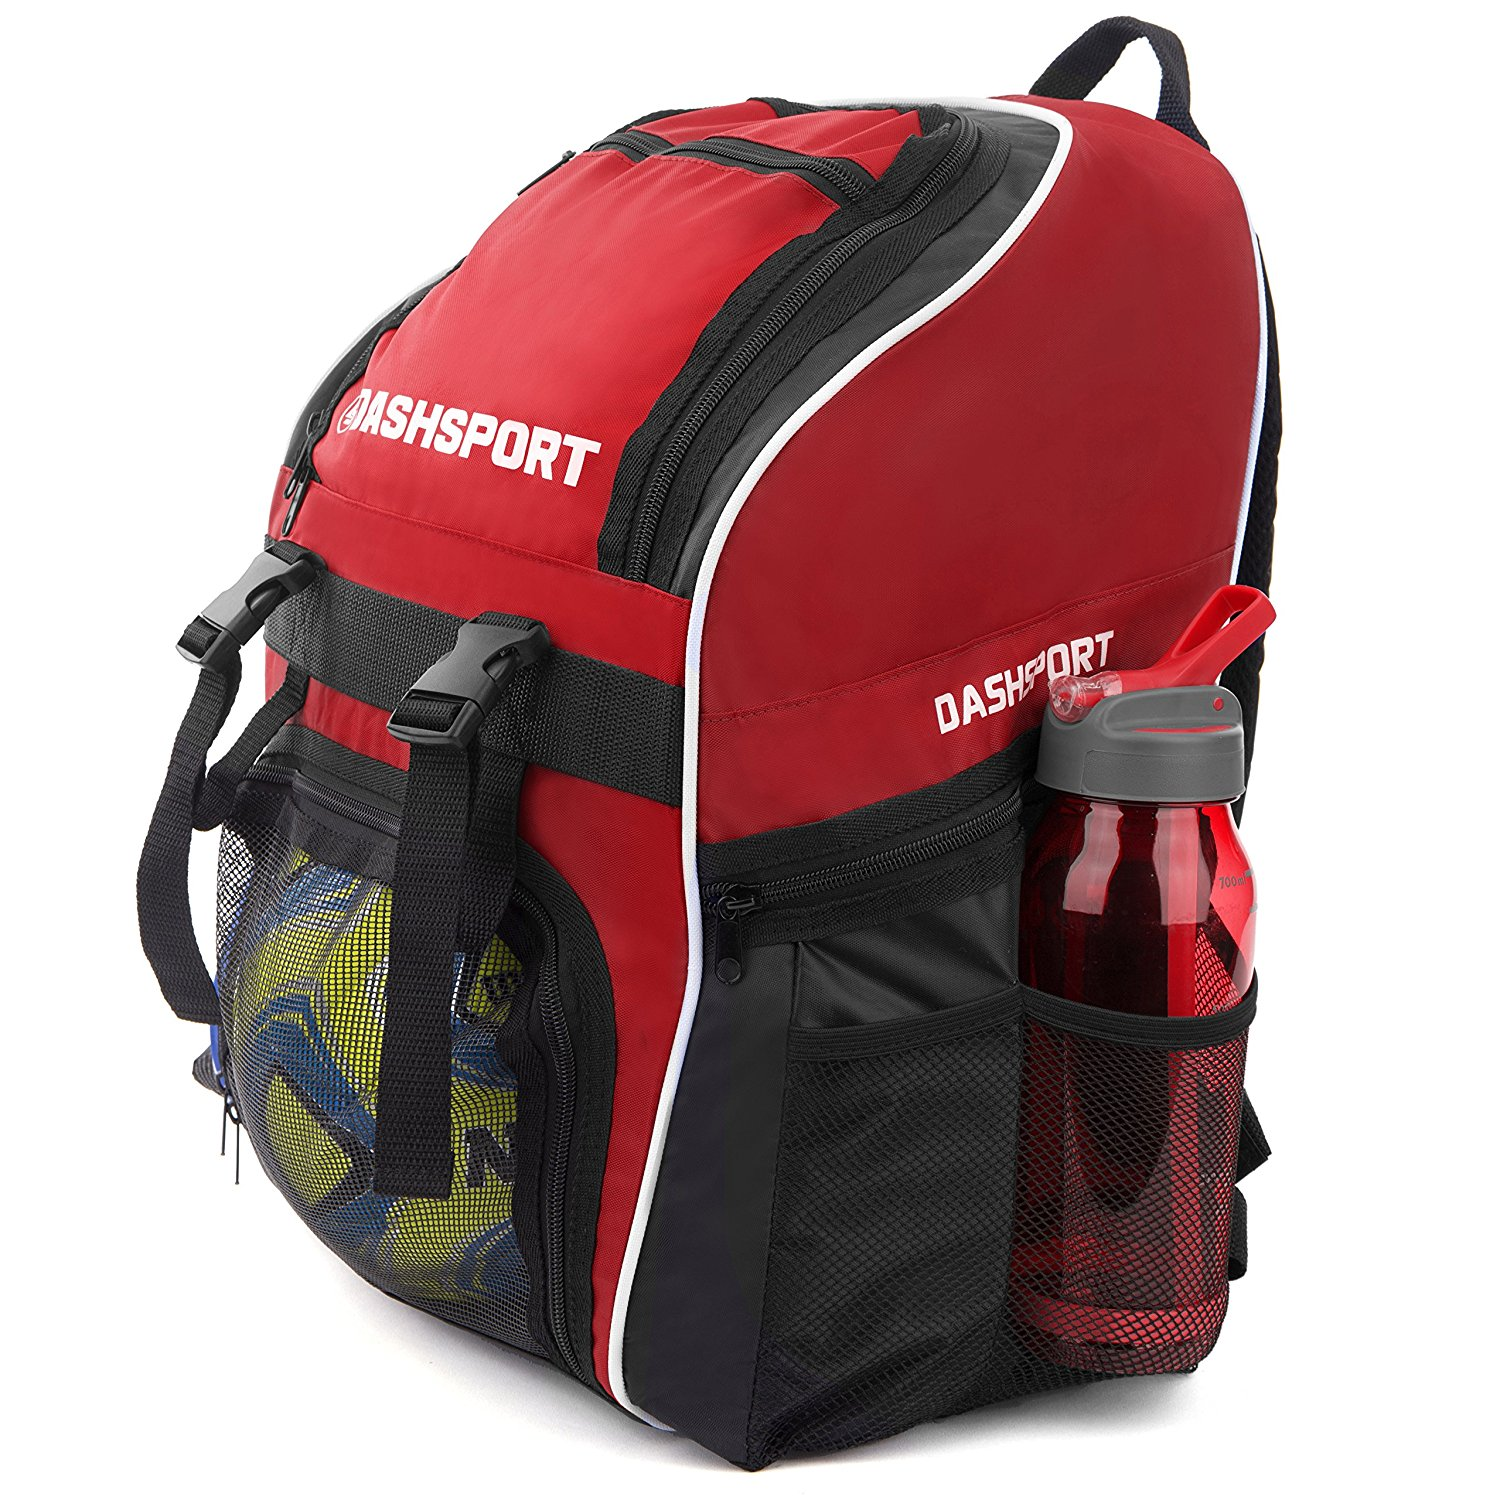 d74f5a2e09b7 DashSport all sports bag gym tote soccer futbol